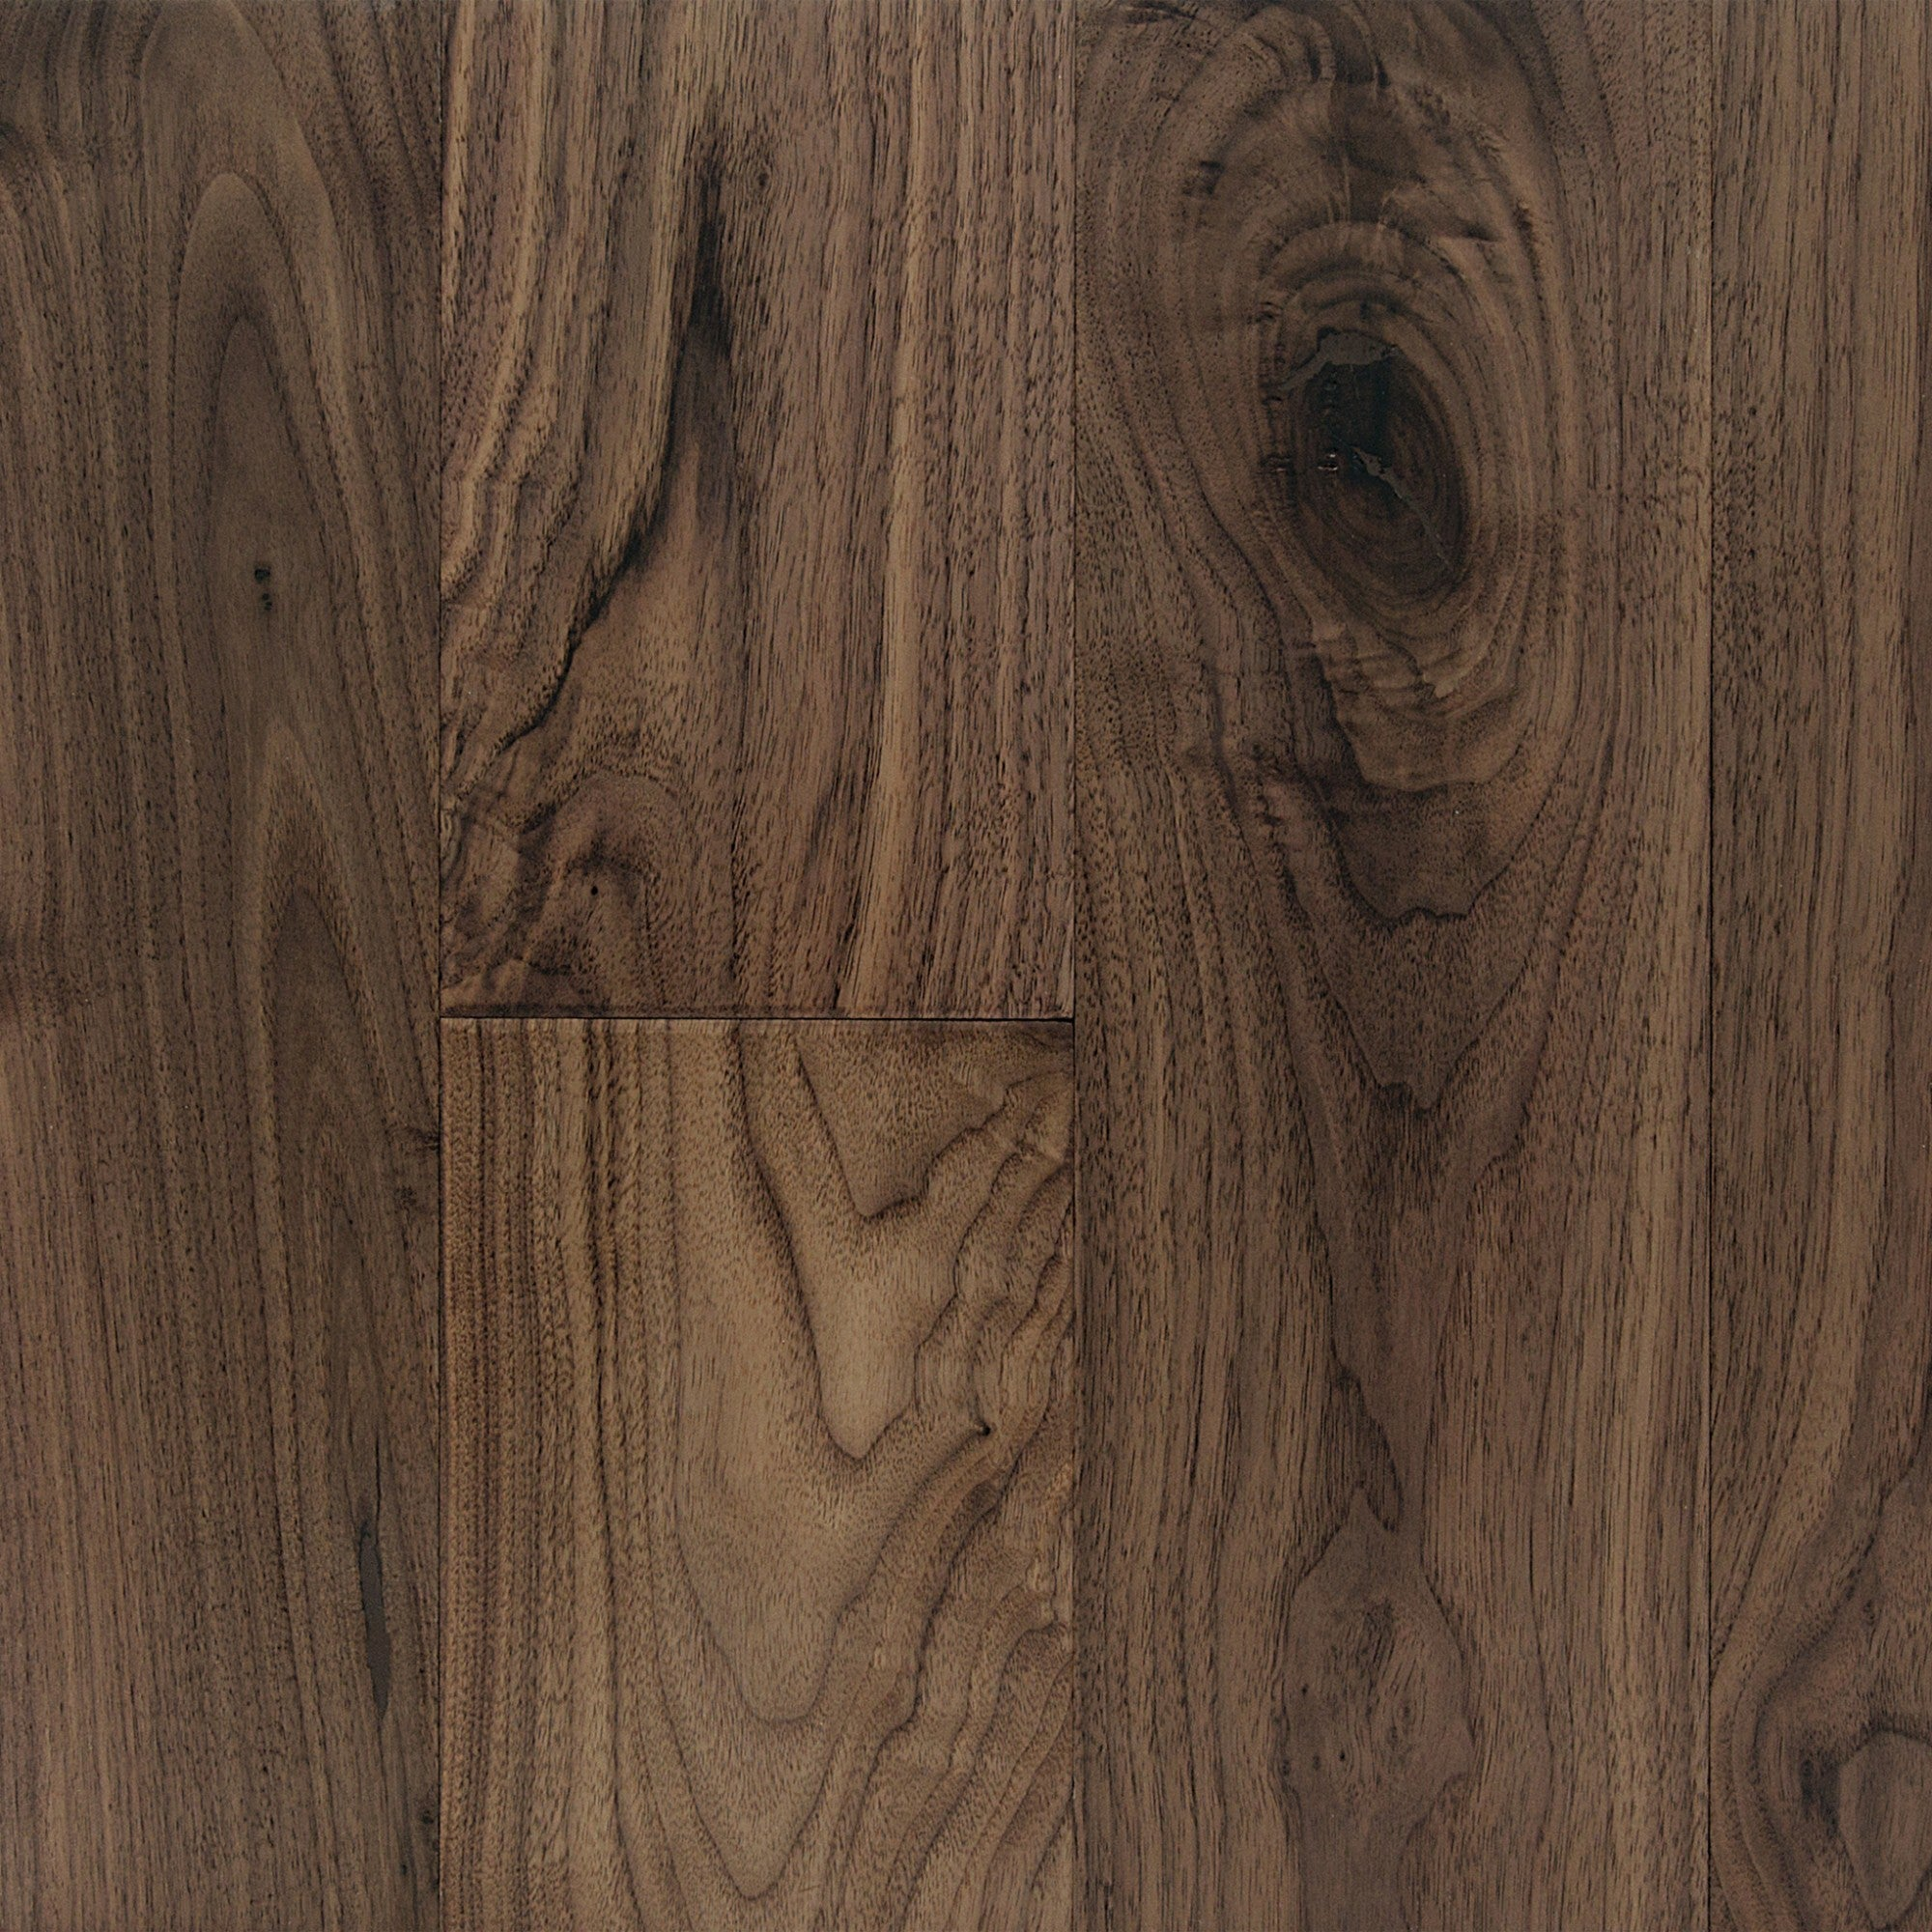 Handscraped - Black Walnut Natural